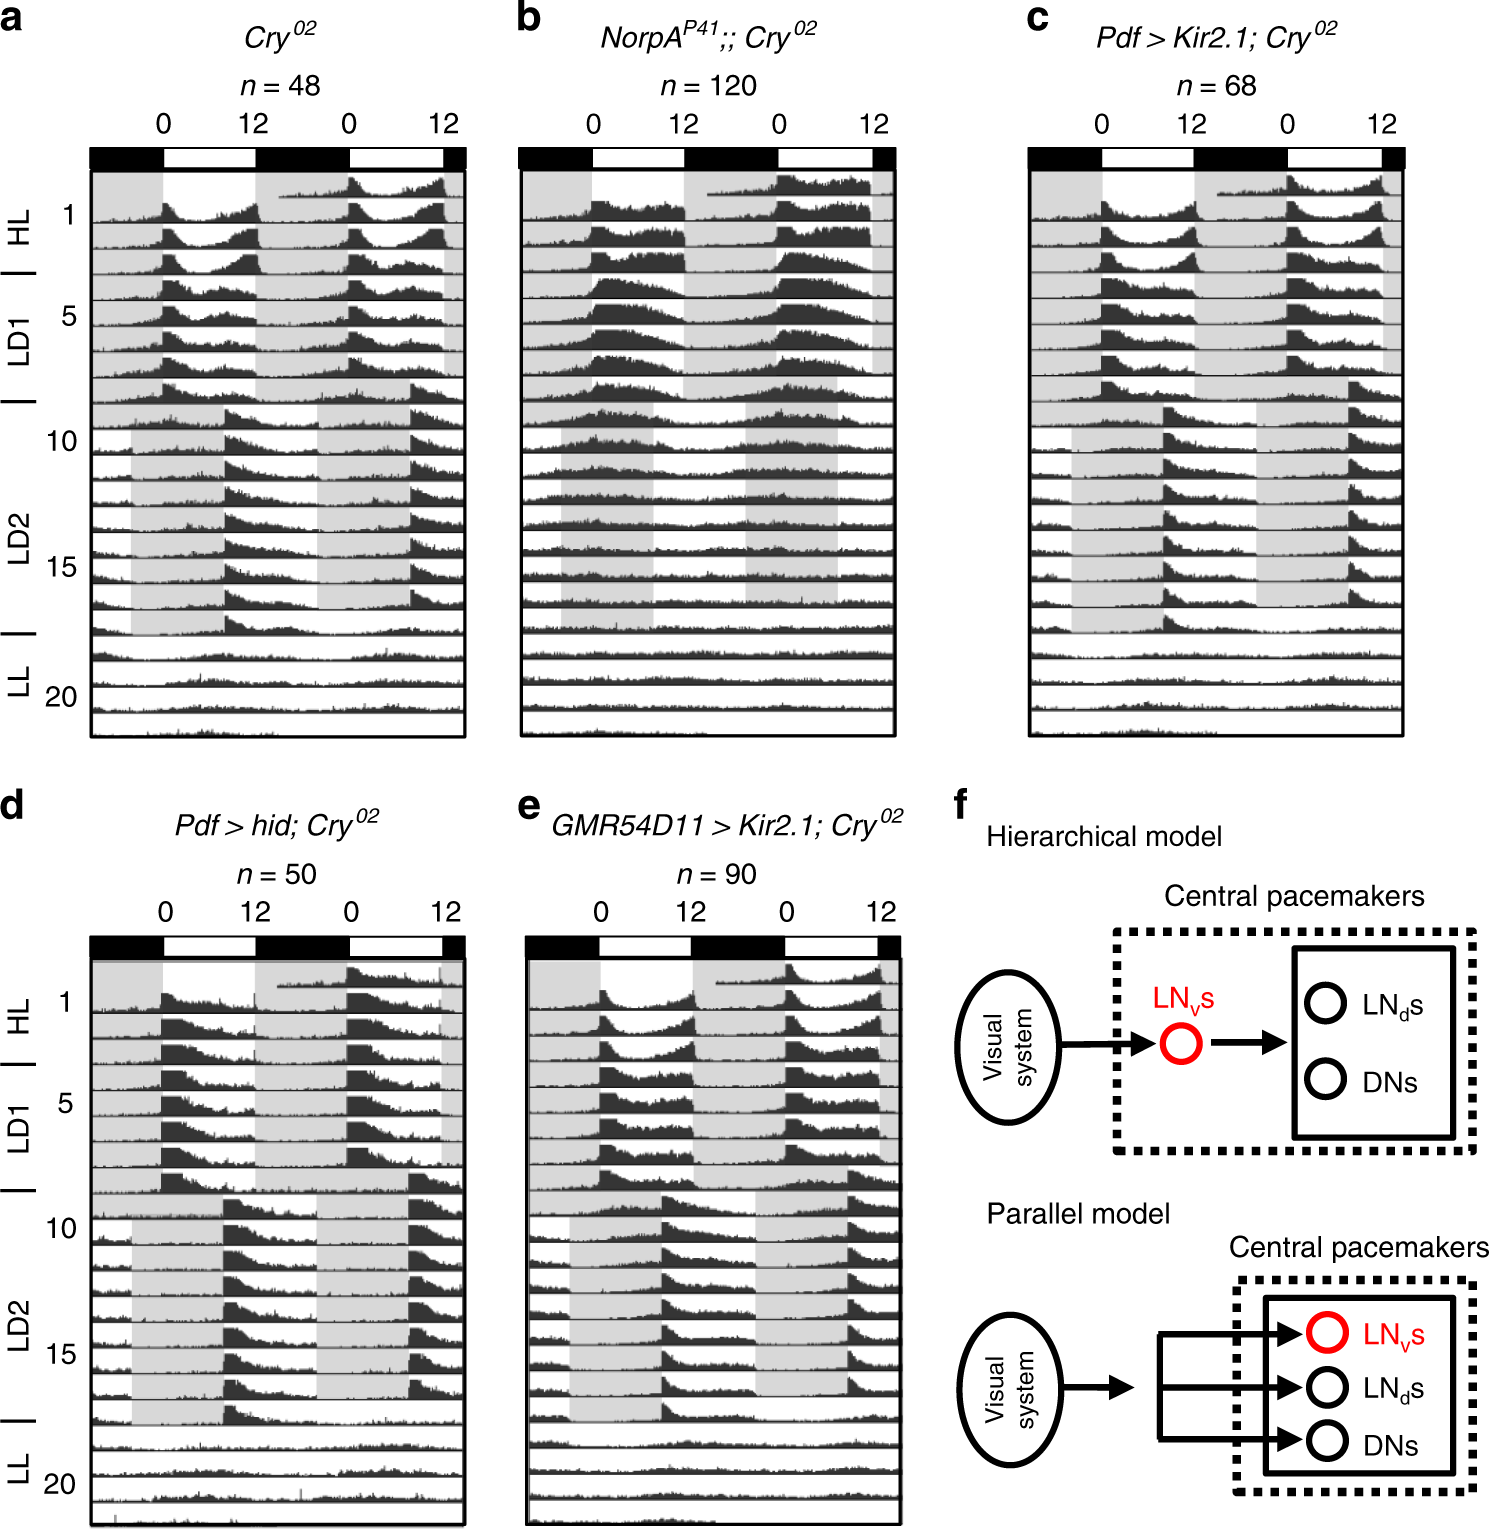 Experiment 7 Leds In A Series And Parallel Circuit Hub Organized Circuits Of Central Circadian Pacemaker Neurons For Visual Photoentrainment Drosophila Nature Communications